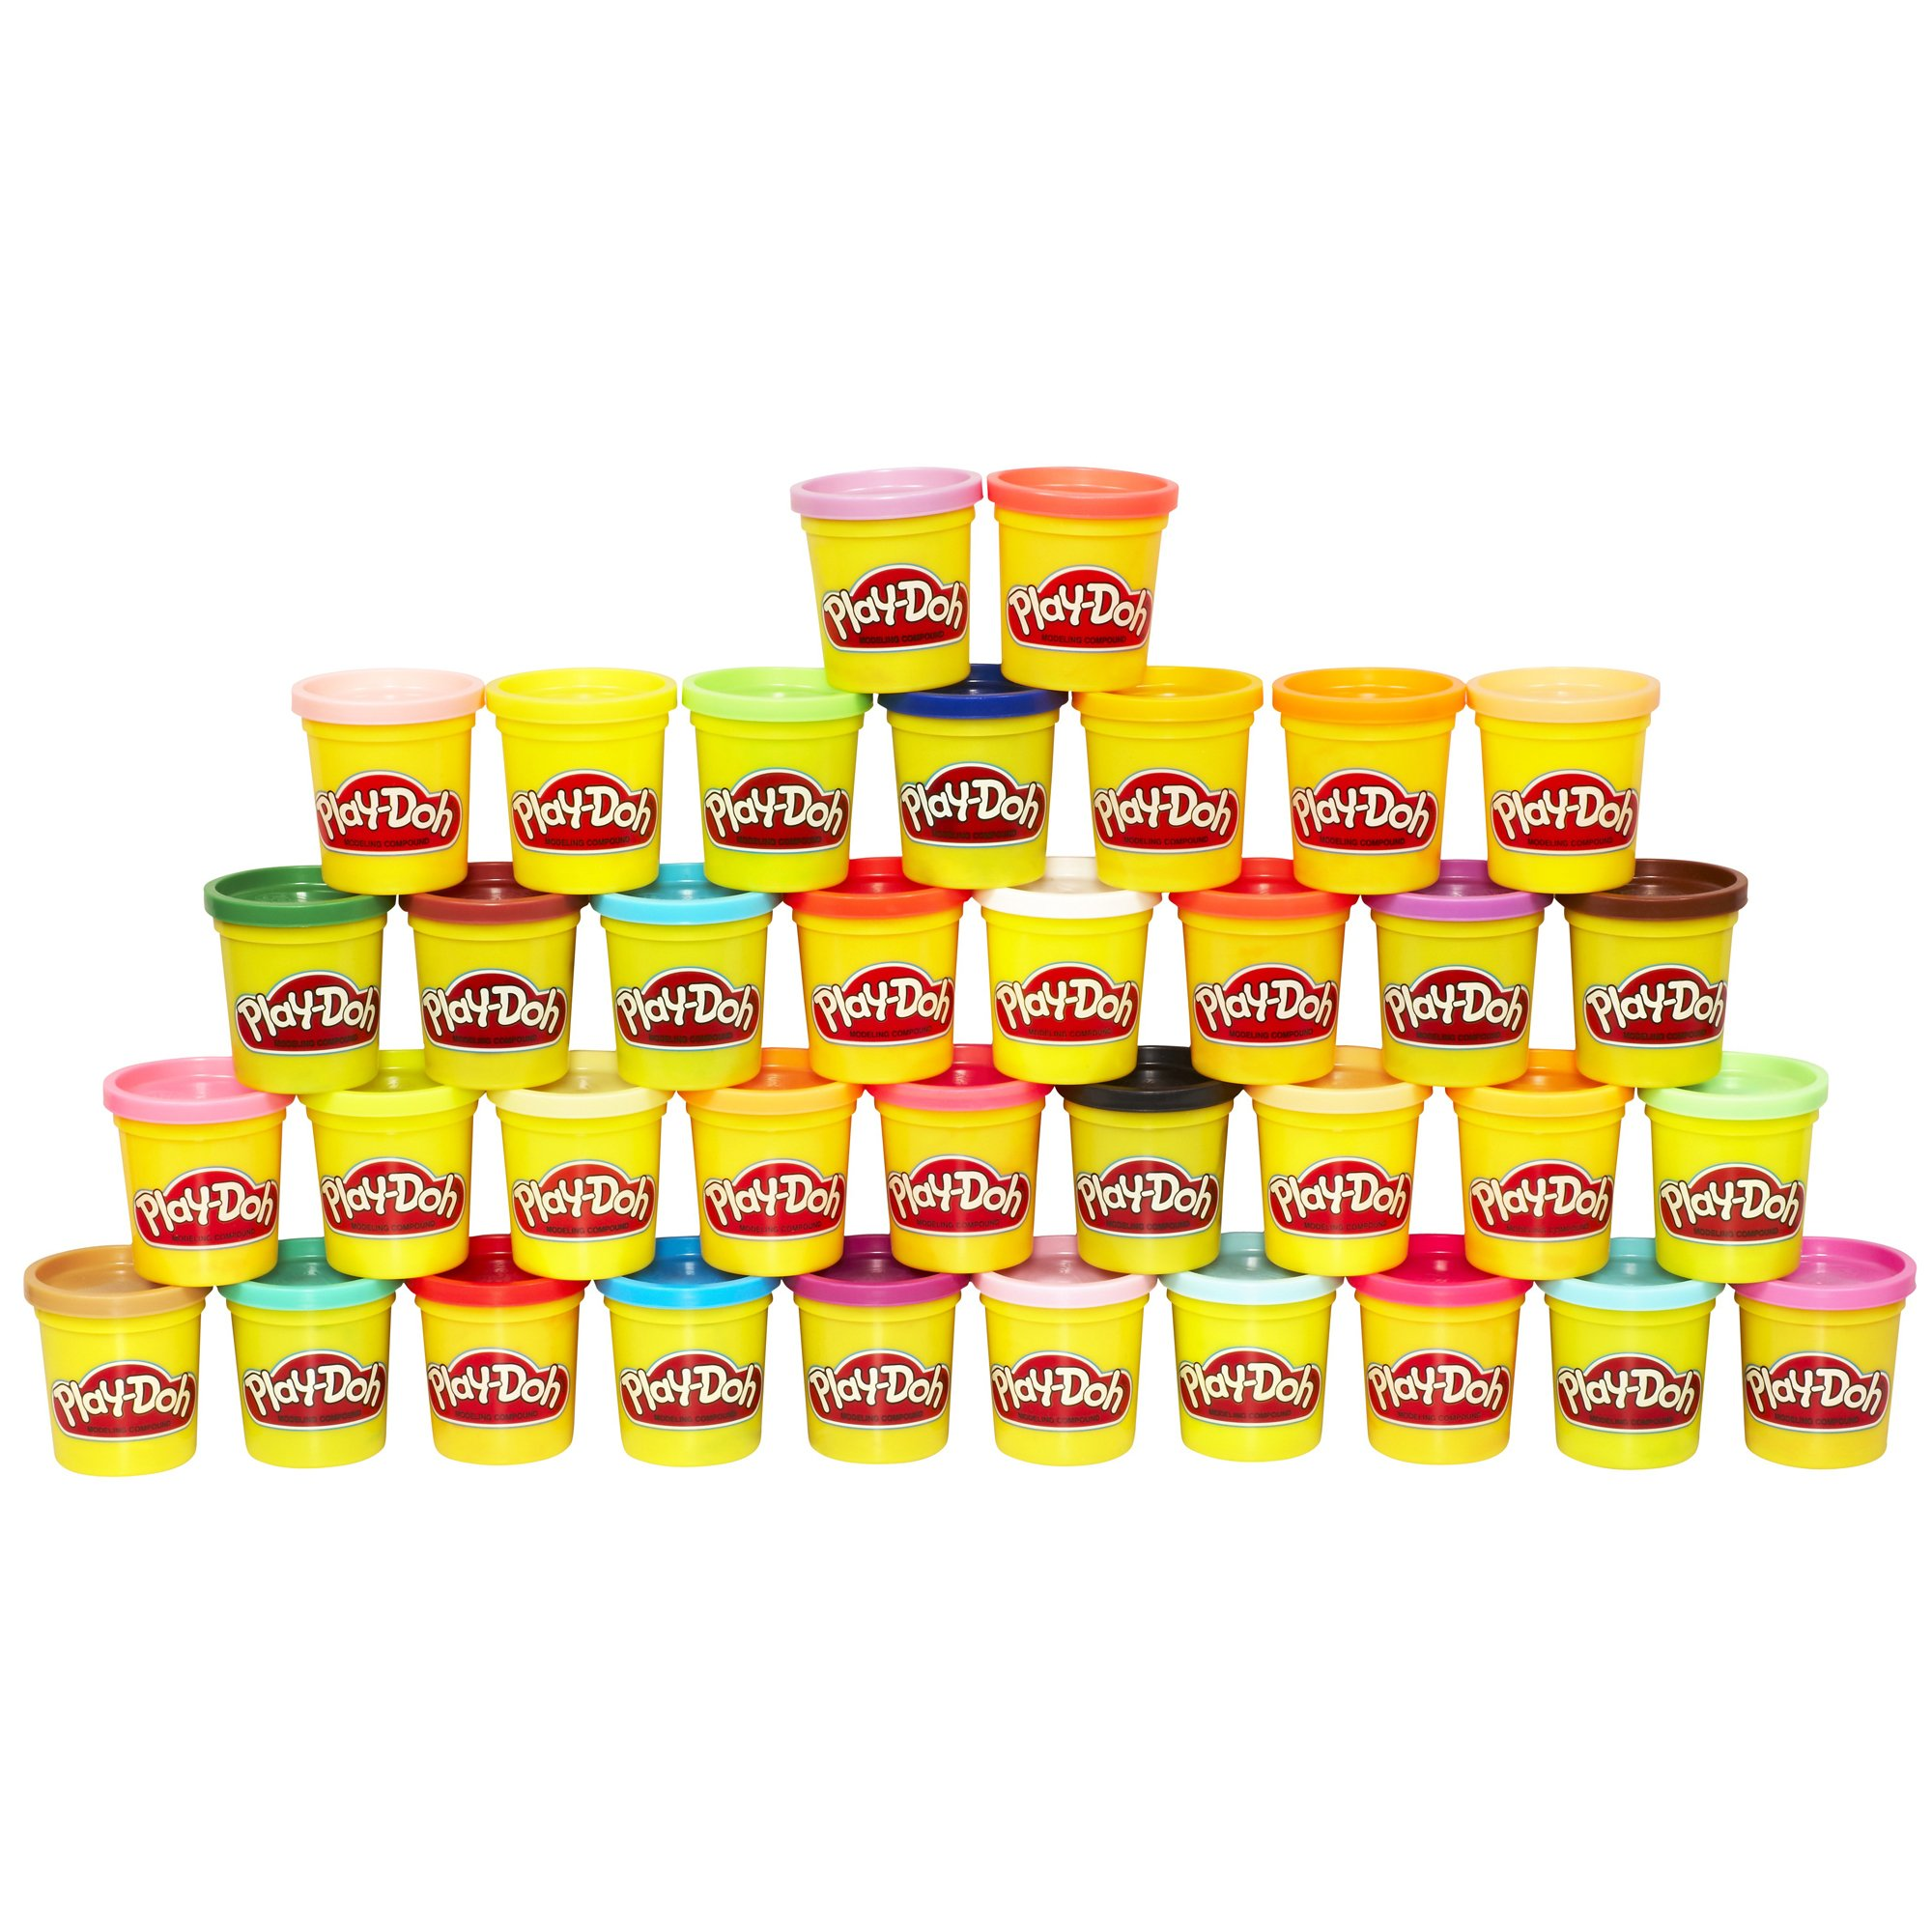 Buy 36 Can Play Doh Mega Pack Now!